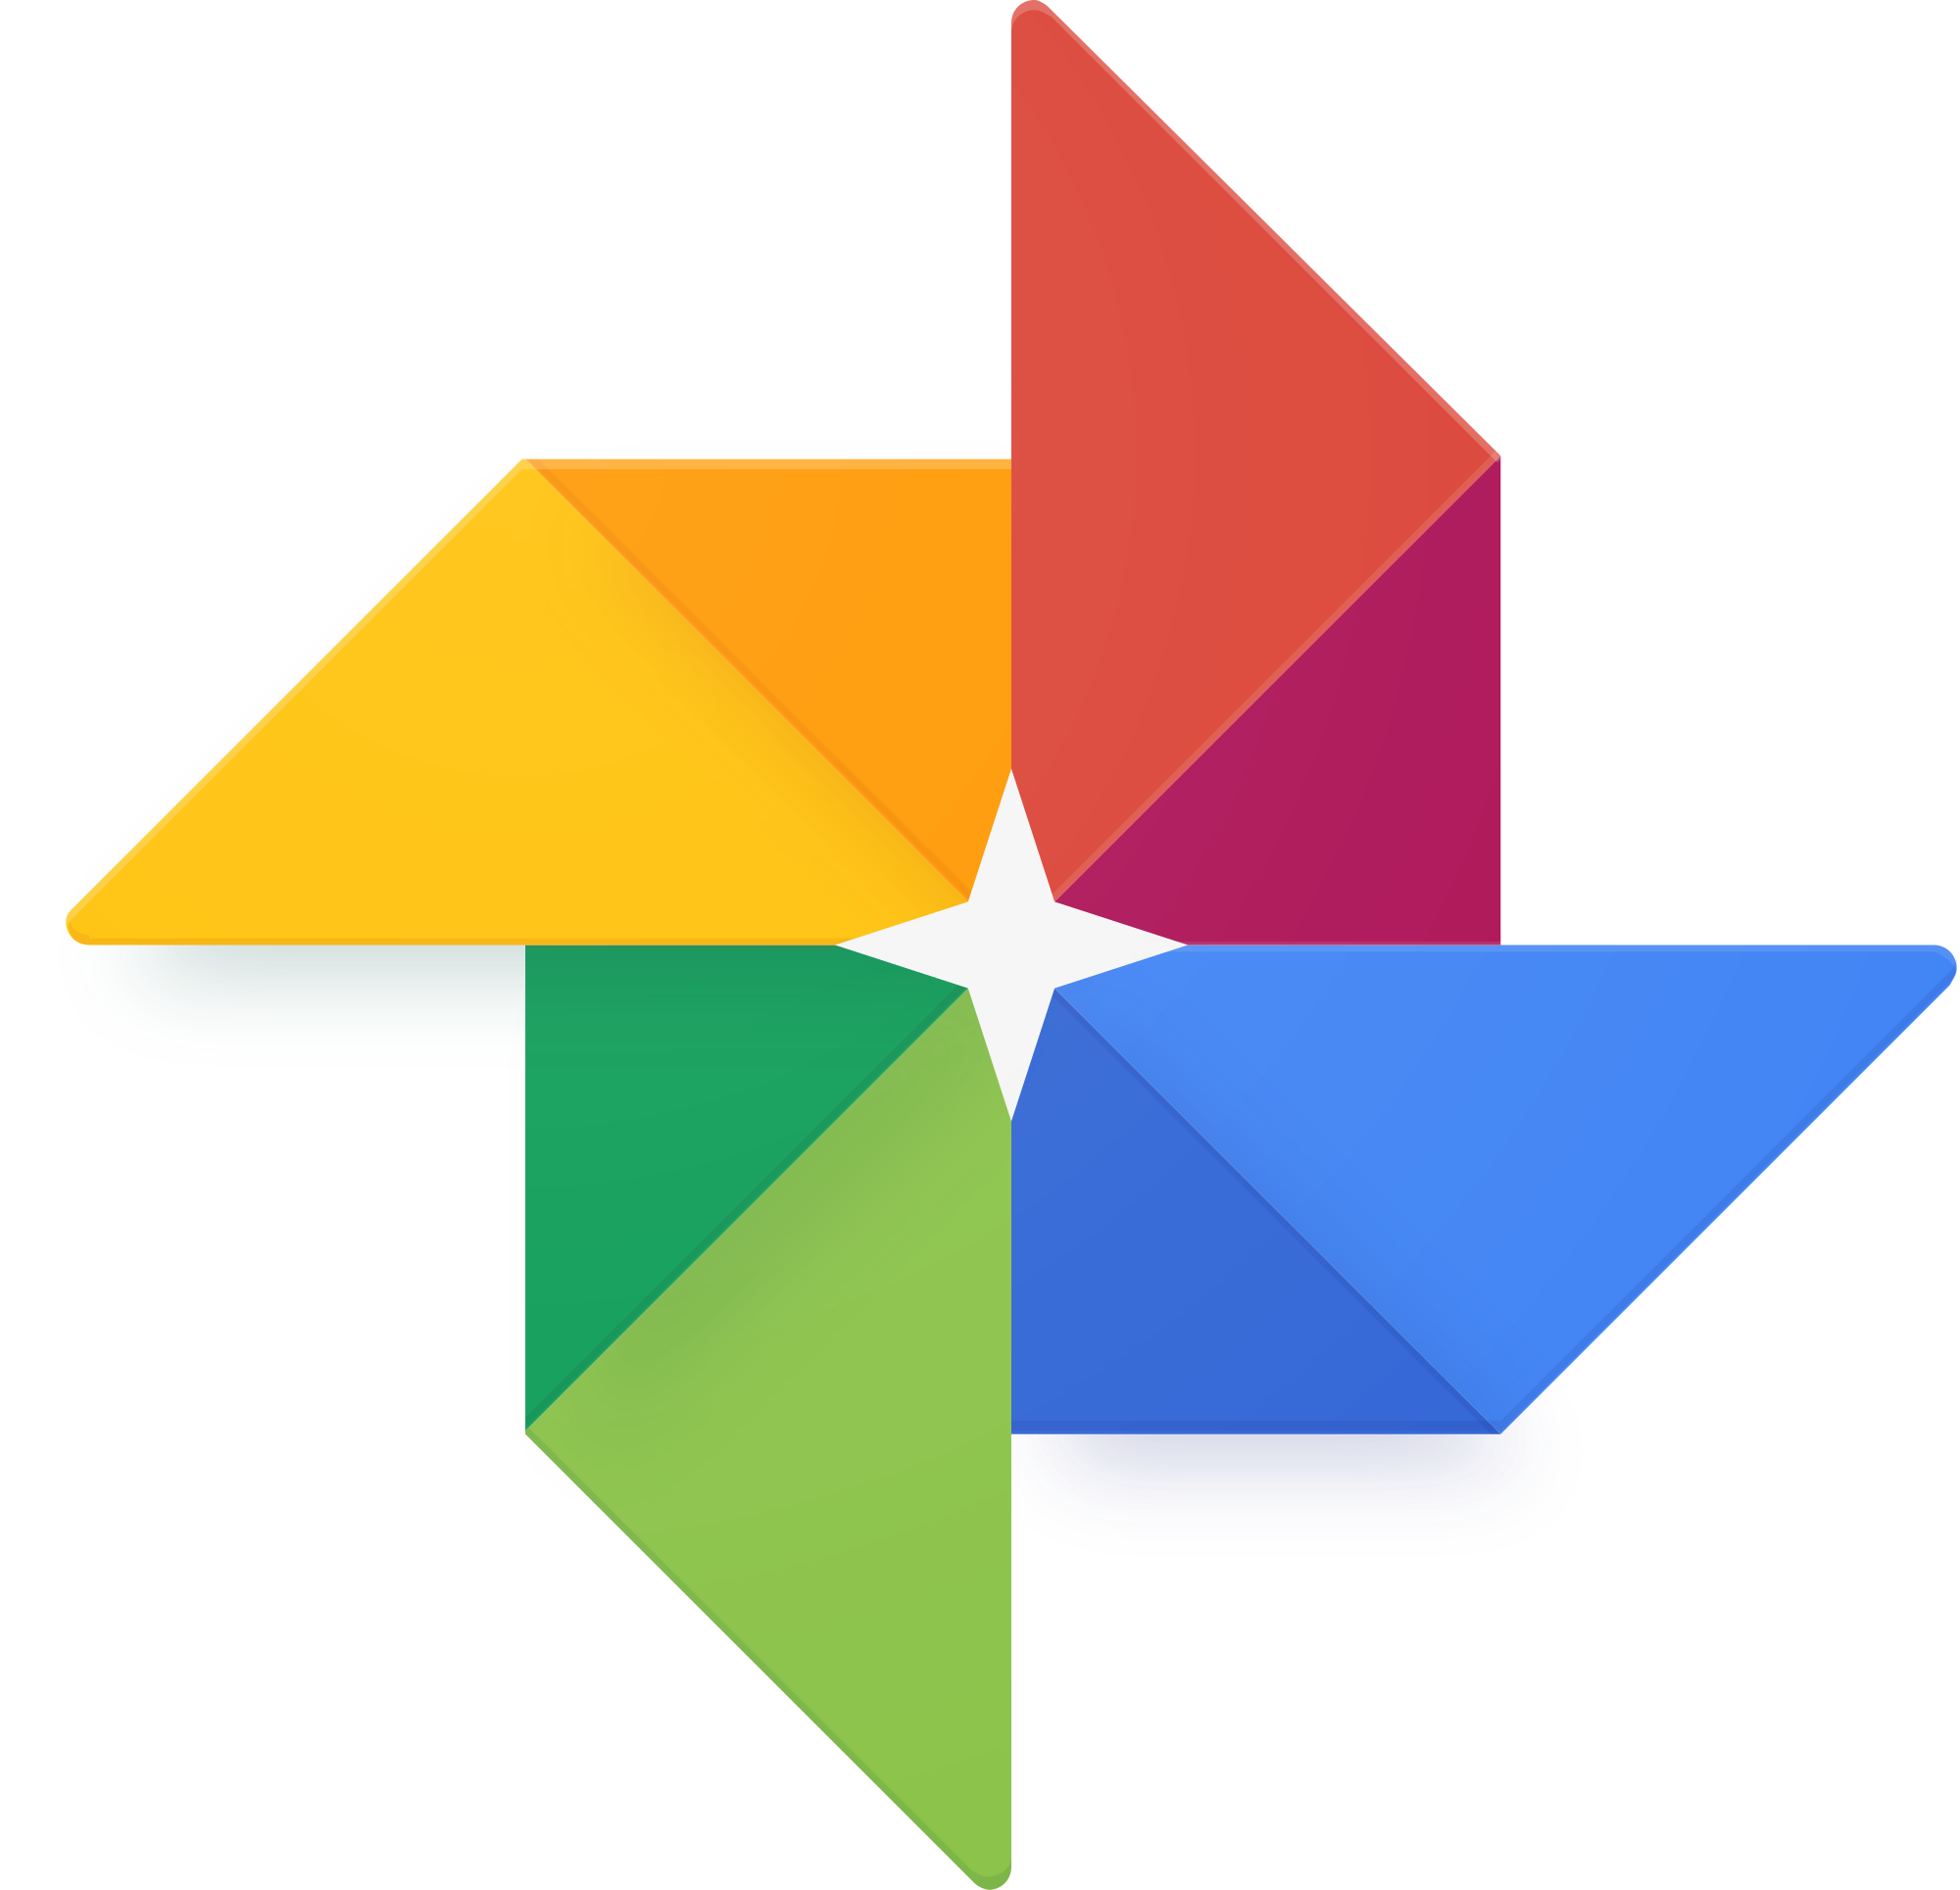 File svg wikimedia commons. Google photos icon png